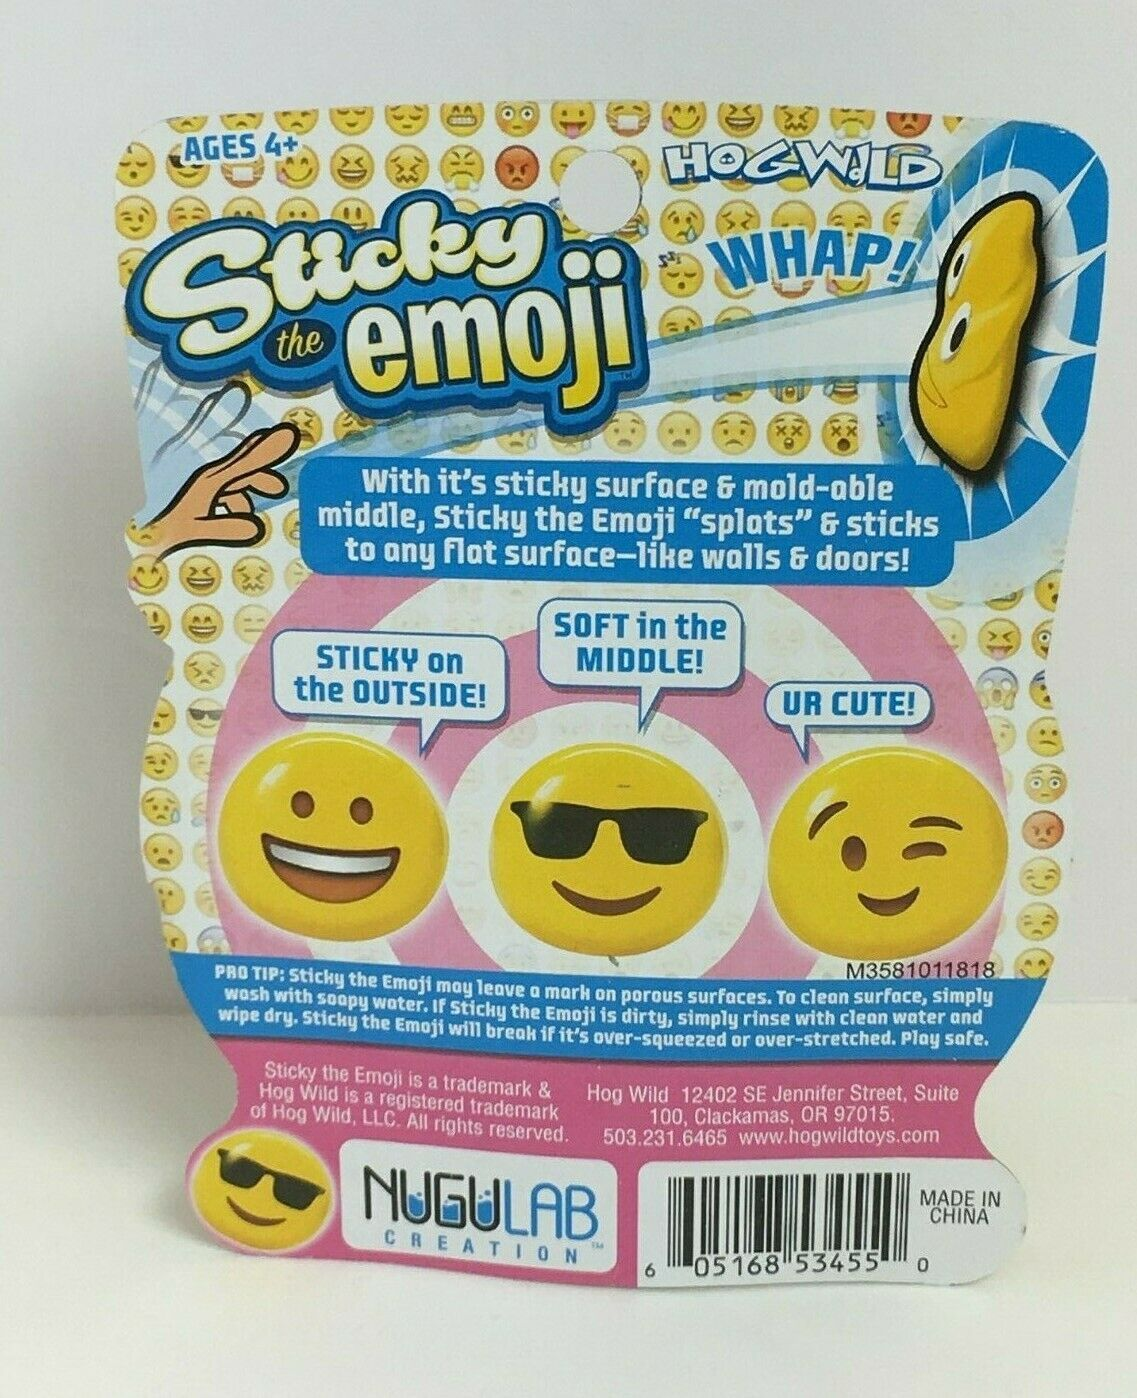 HogWild Yellow Sticky The Emoji W/SunGlasses Stikball W/ Mold-Able Middle